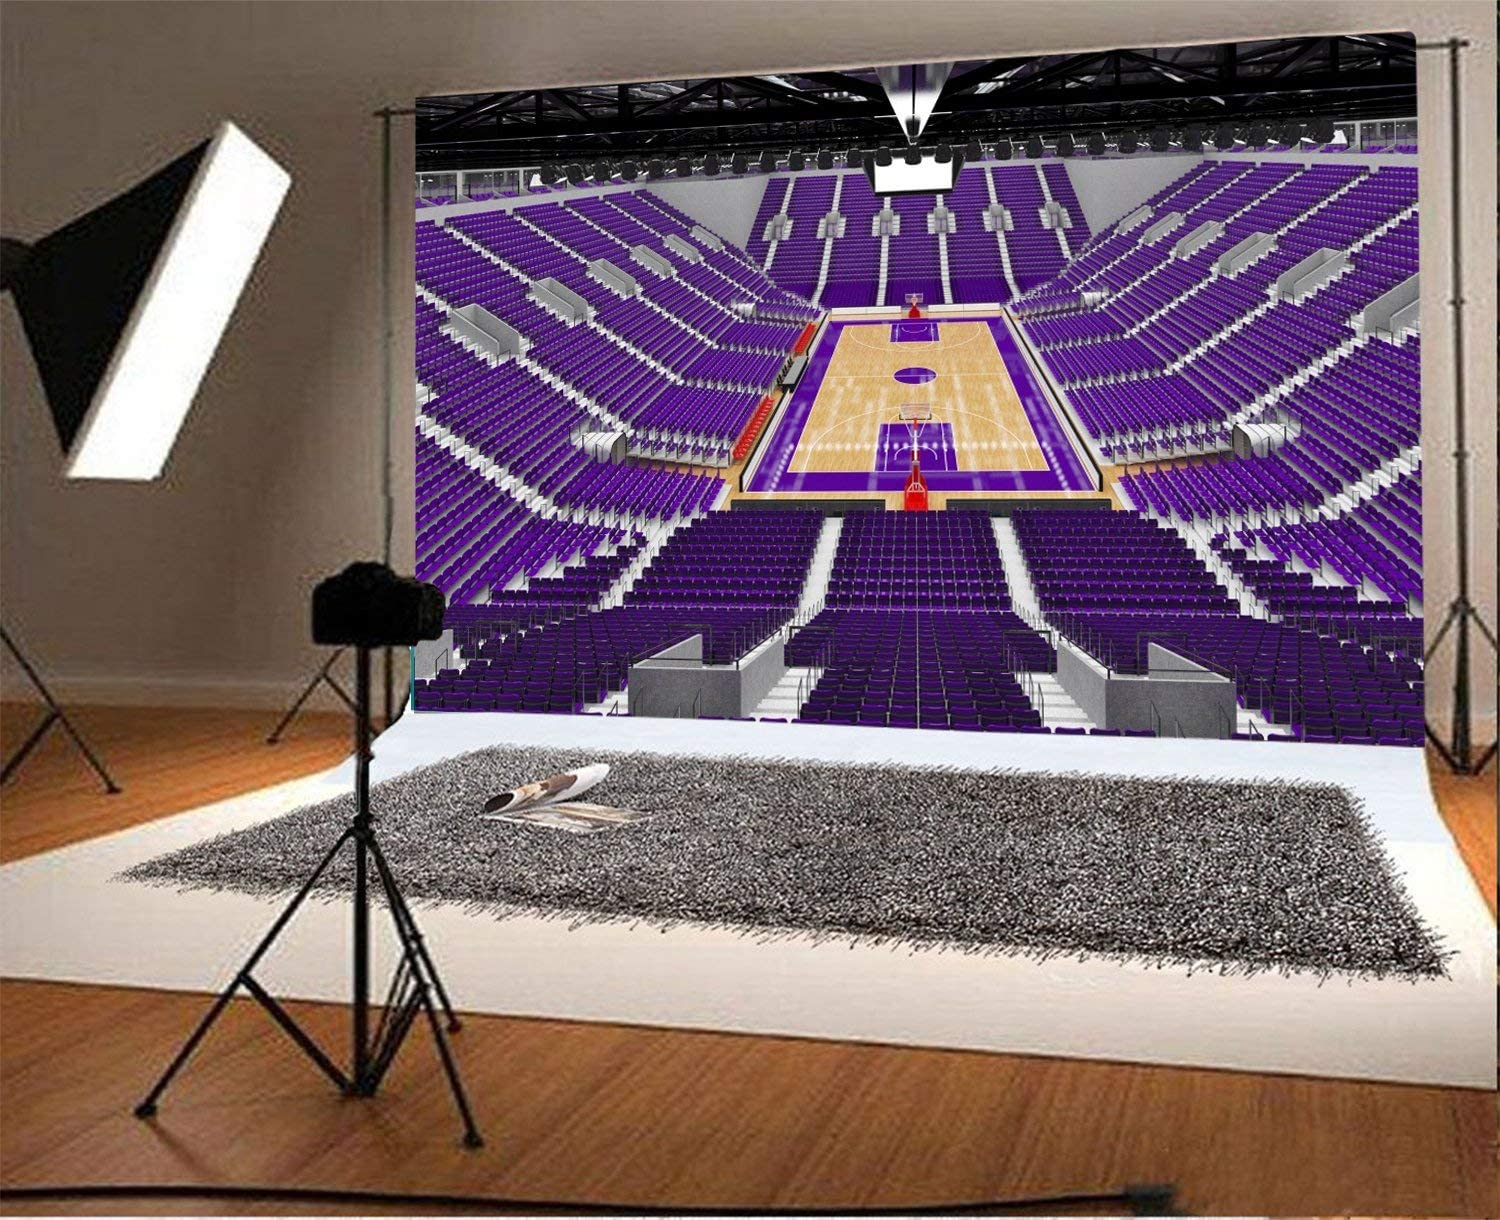 Modern Sports Arena Photography Background 7x5ft Basketball Purple Seats 3D Render Arena Background Basketball Competition Emptygame Hoop Indoor Sport Spotlight Beautiful Big Stair